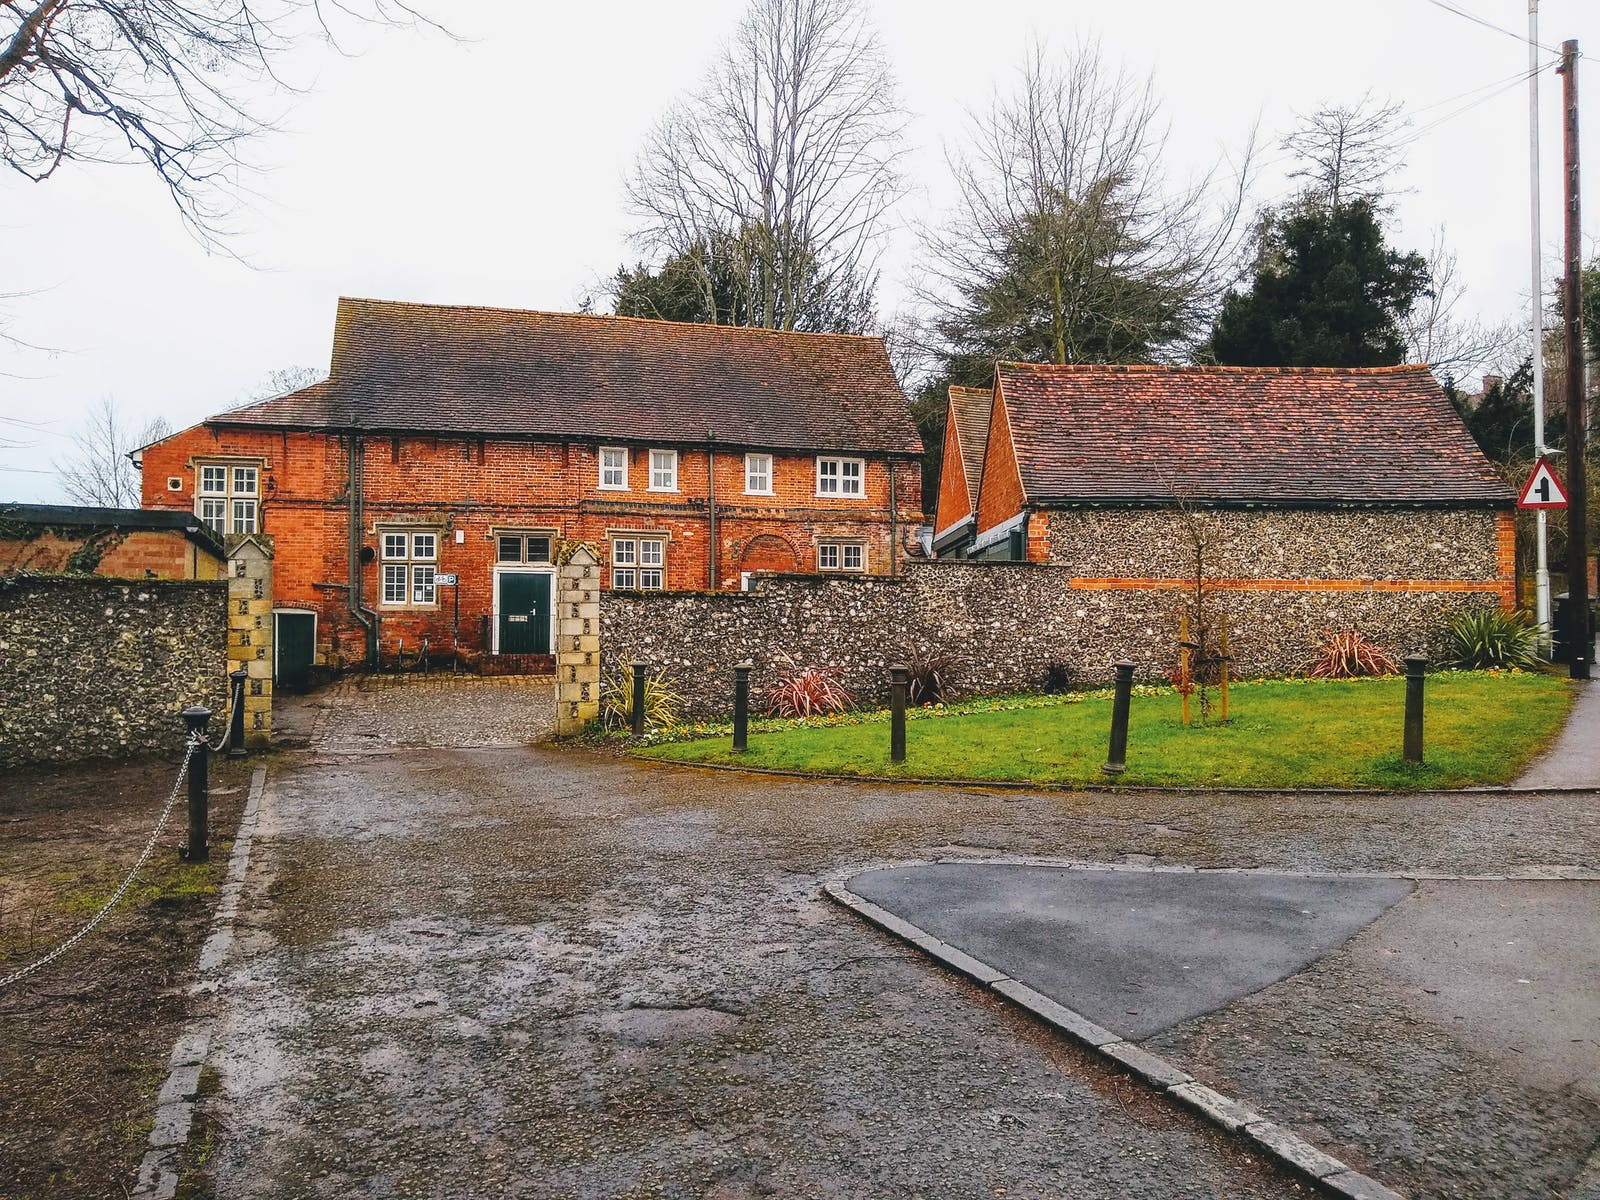 Caversham Court, Reading, Office / Residential / Education / Healthcare To Let / For Sale - Caversham Court Reading RG4 7AD driveway approach wider angle.jpg